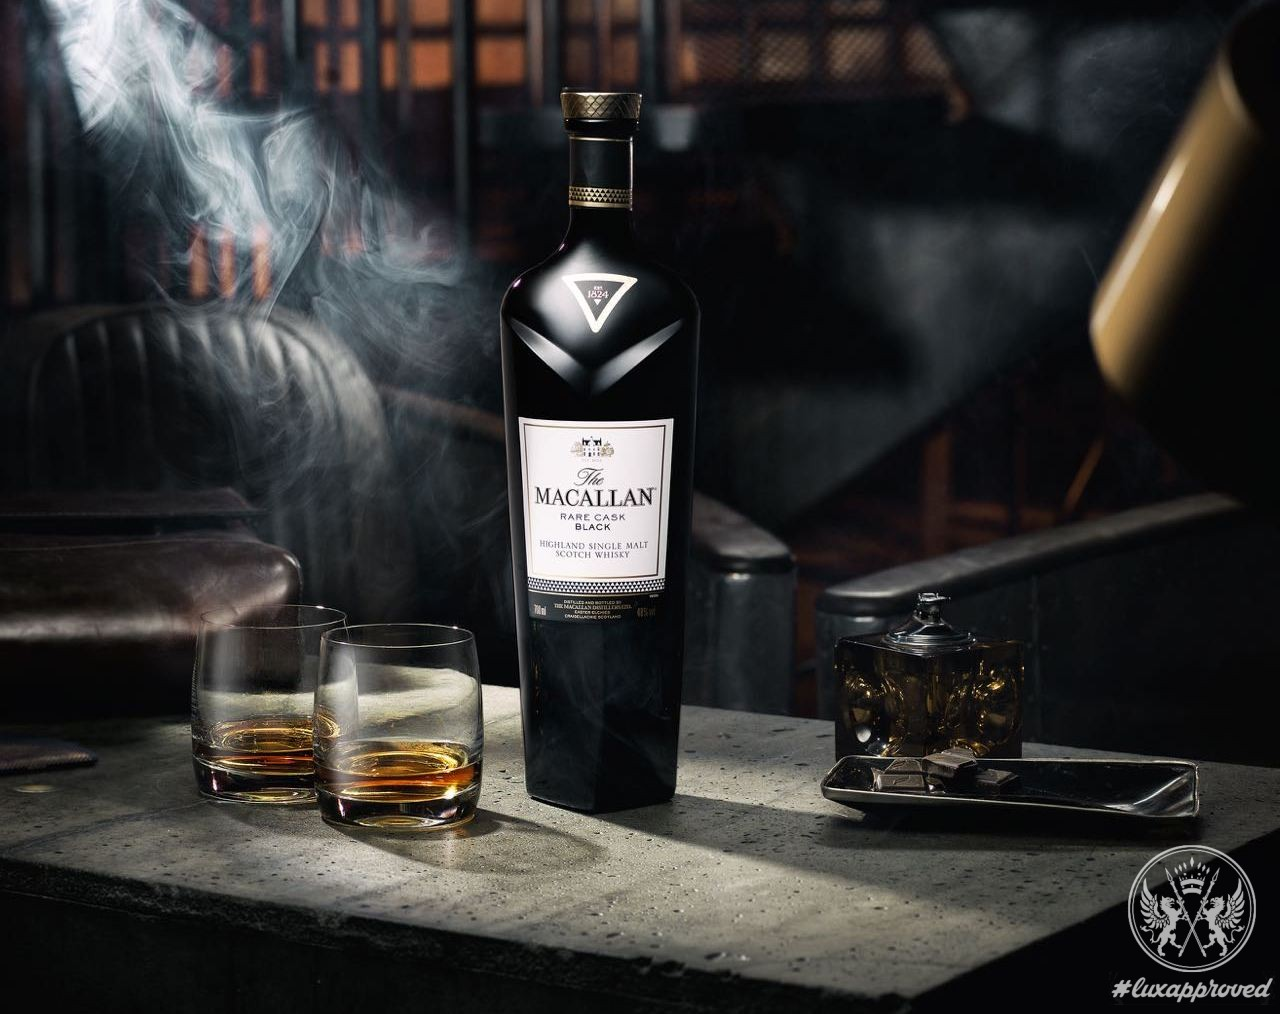 Dark, Smoky and Unexpected: The Macallan Rare Cask Black